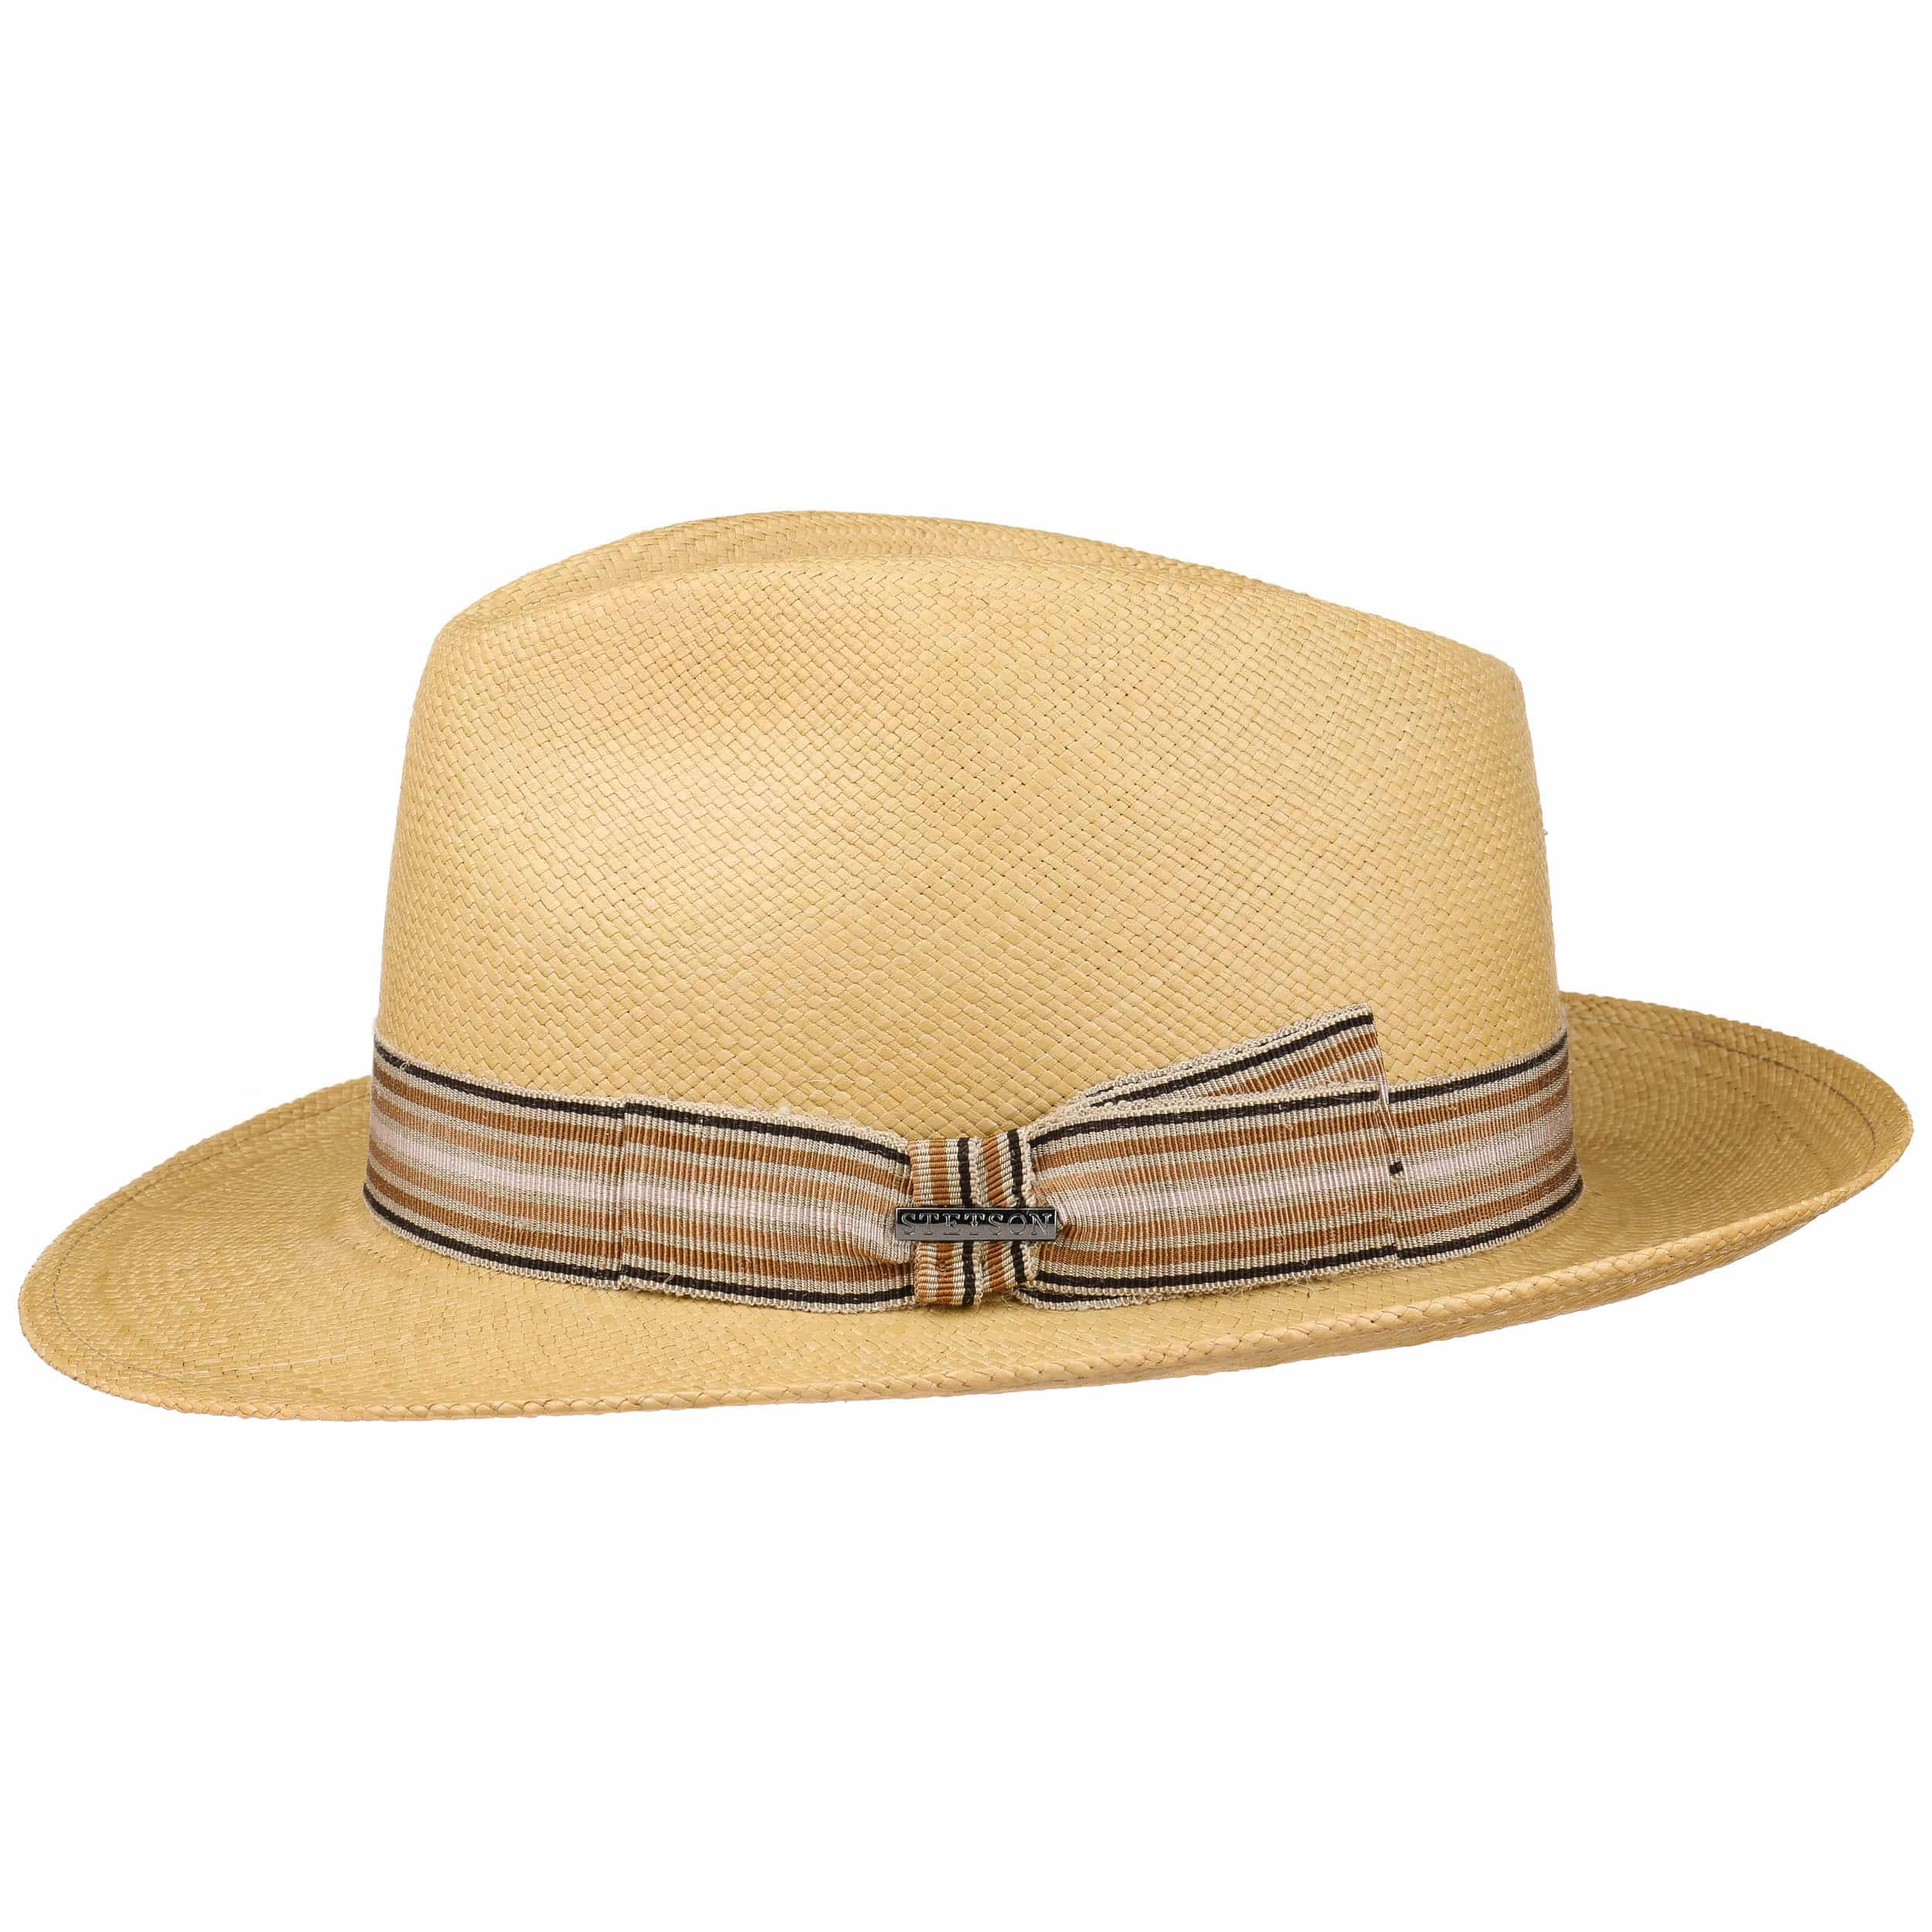 Duran Fedora Panama Hat by Stetson, EUR 179,00 --> Hats ...